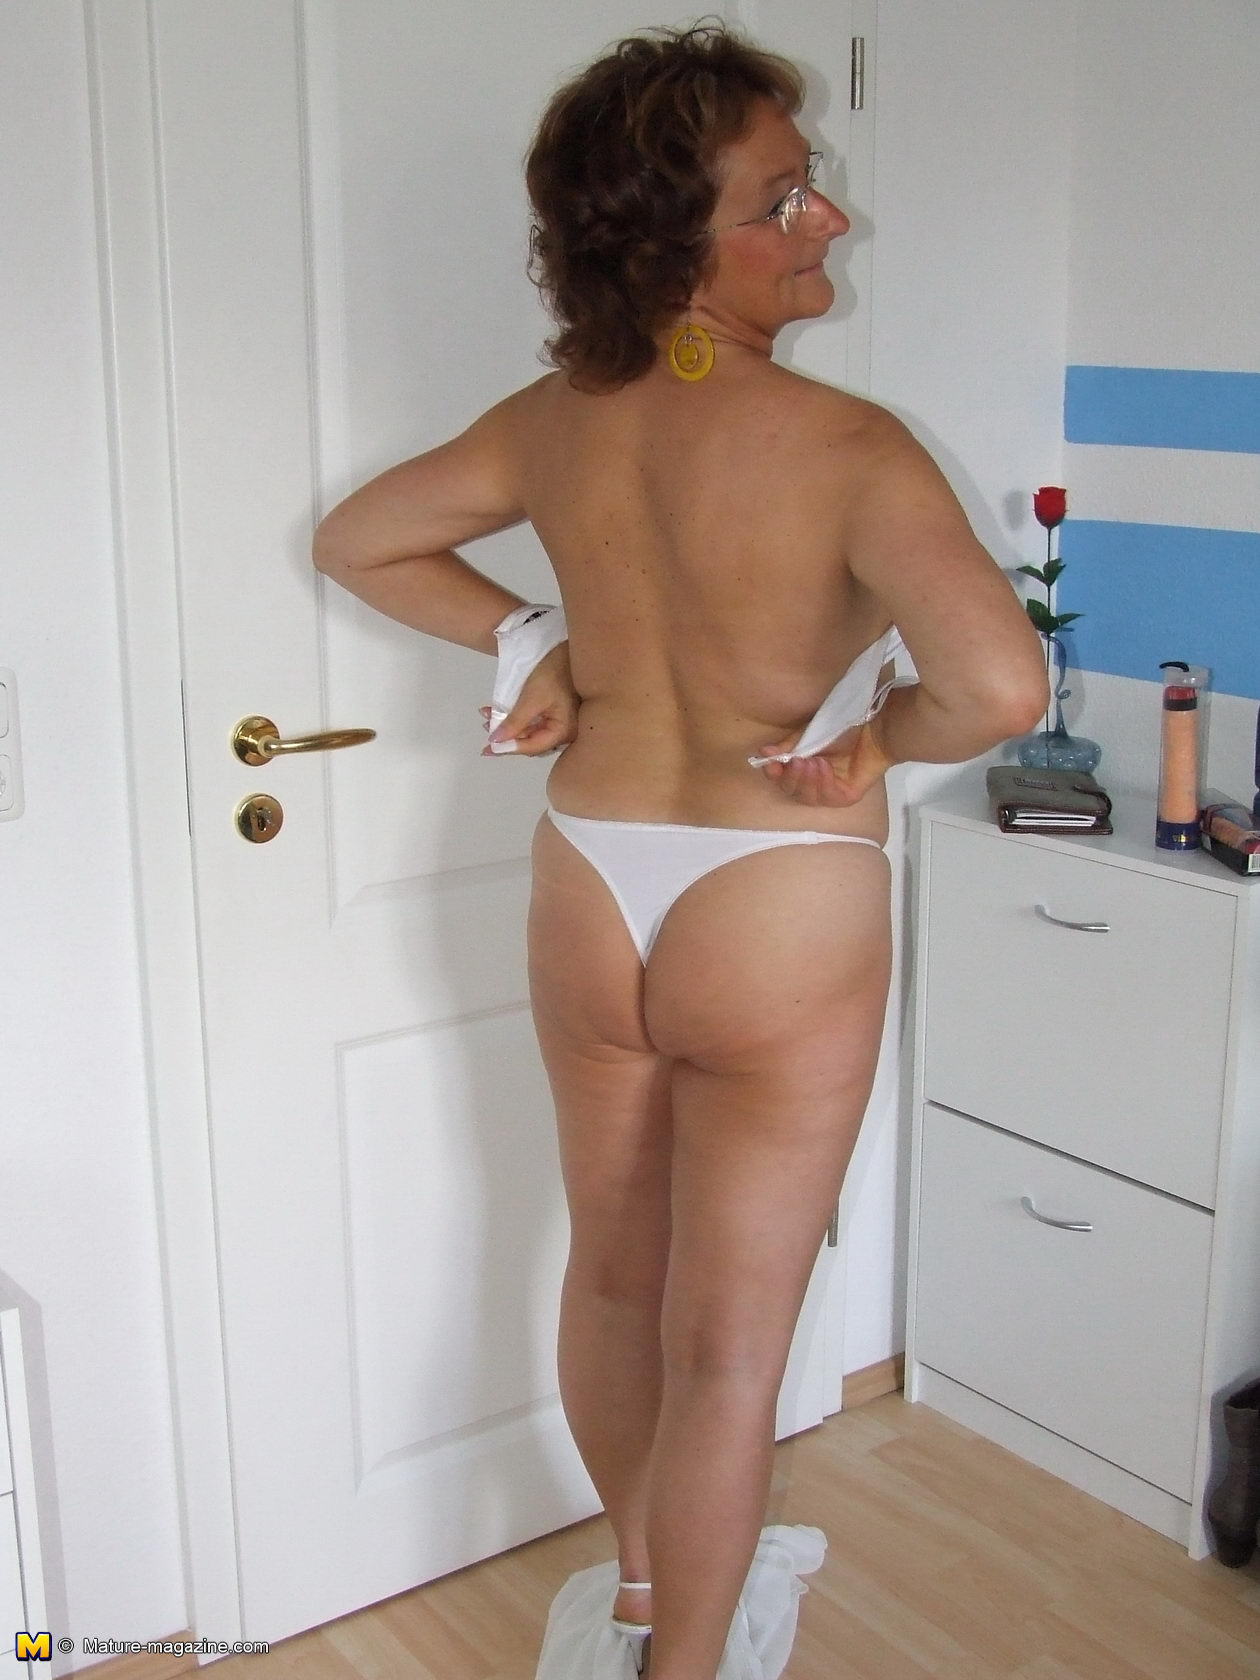 A hairy mature wife first time nude on a nudist beach 3